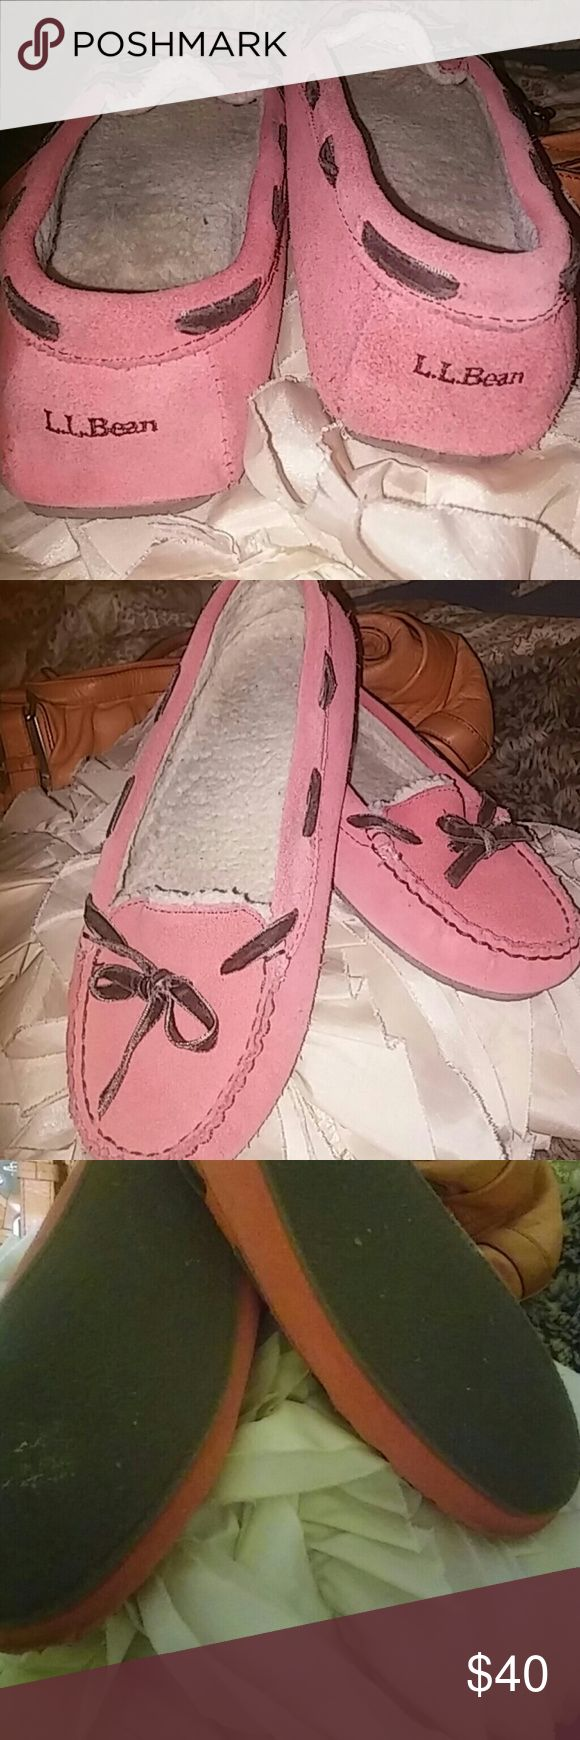 LL Bean slippers like new. Super comfy and pretty leather LL Bean slippers. Pinkish dark salmon color. Worn once! LL Bean Shoes Slippers